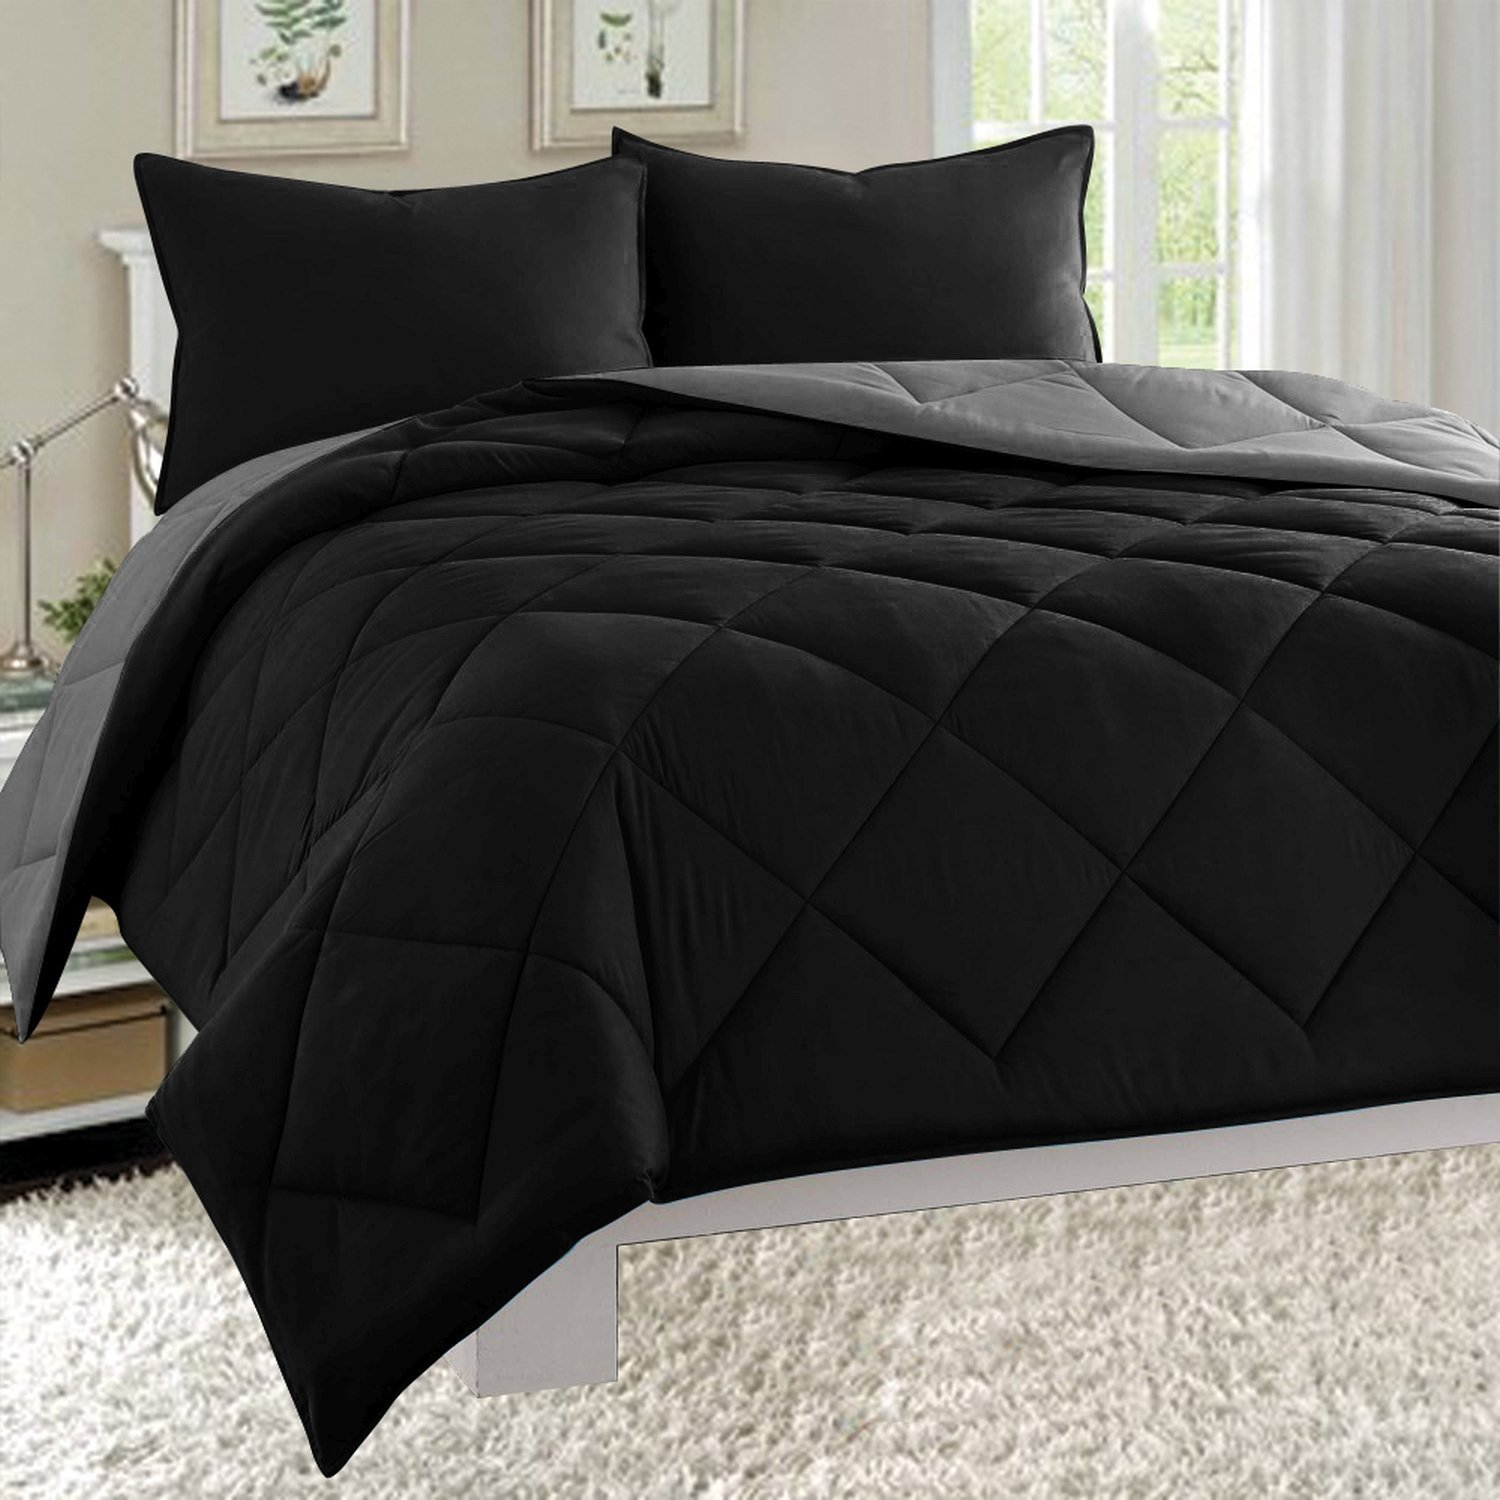 reversible comforter sets u2013 ease bedding with style